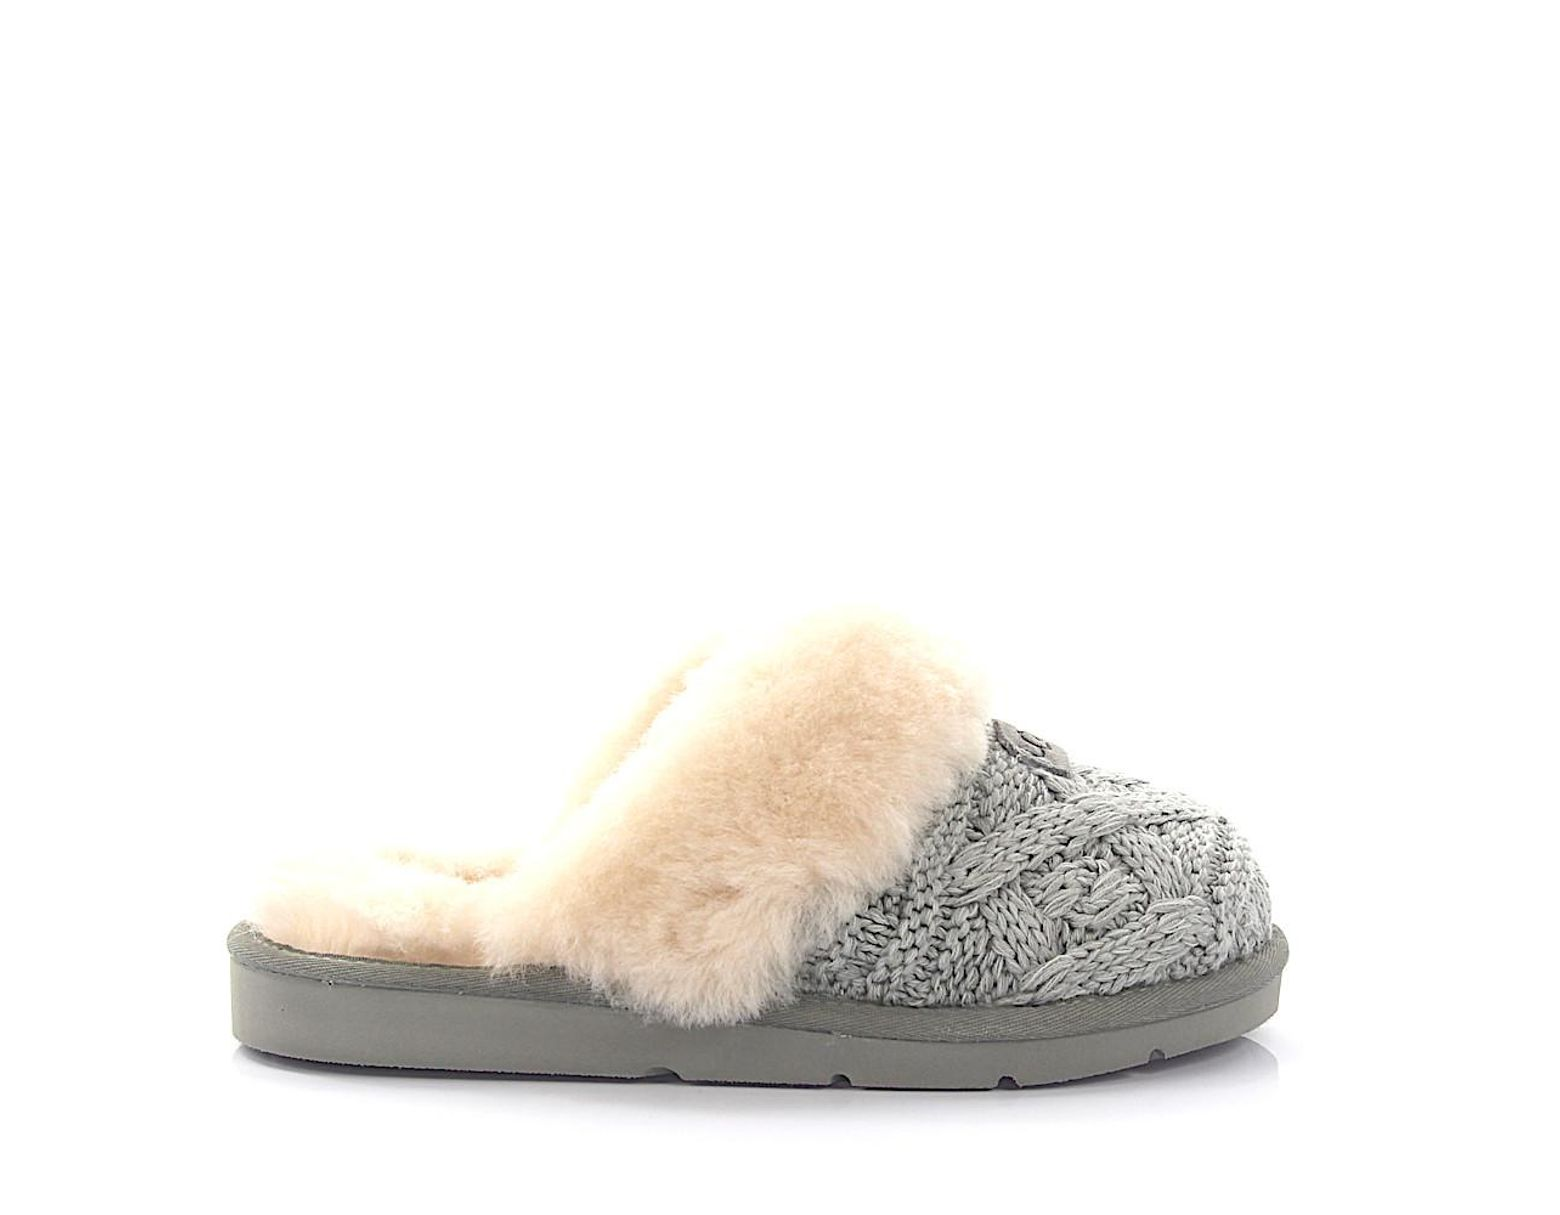 28562e1e707 Women's House Slippers Cozy Cable Knitted Gray Lamb Fur